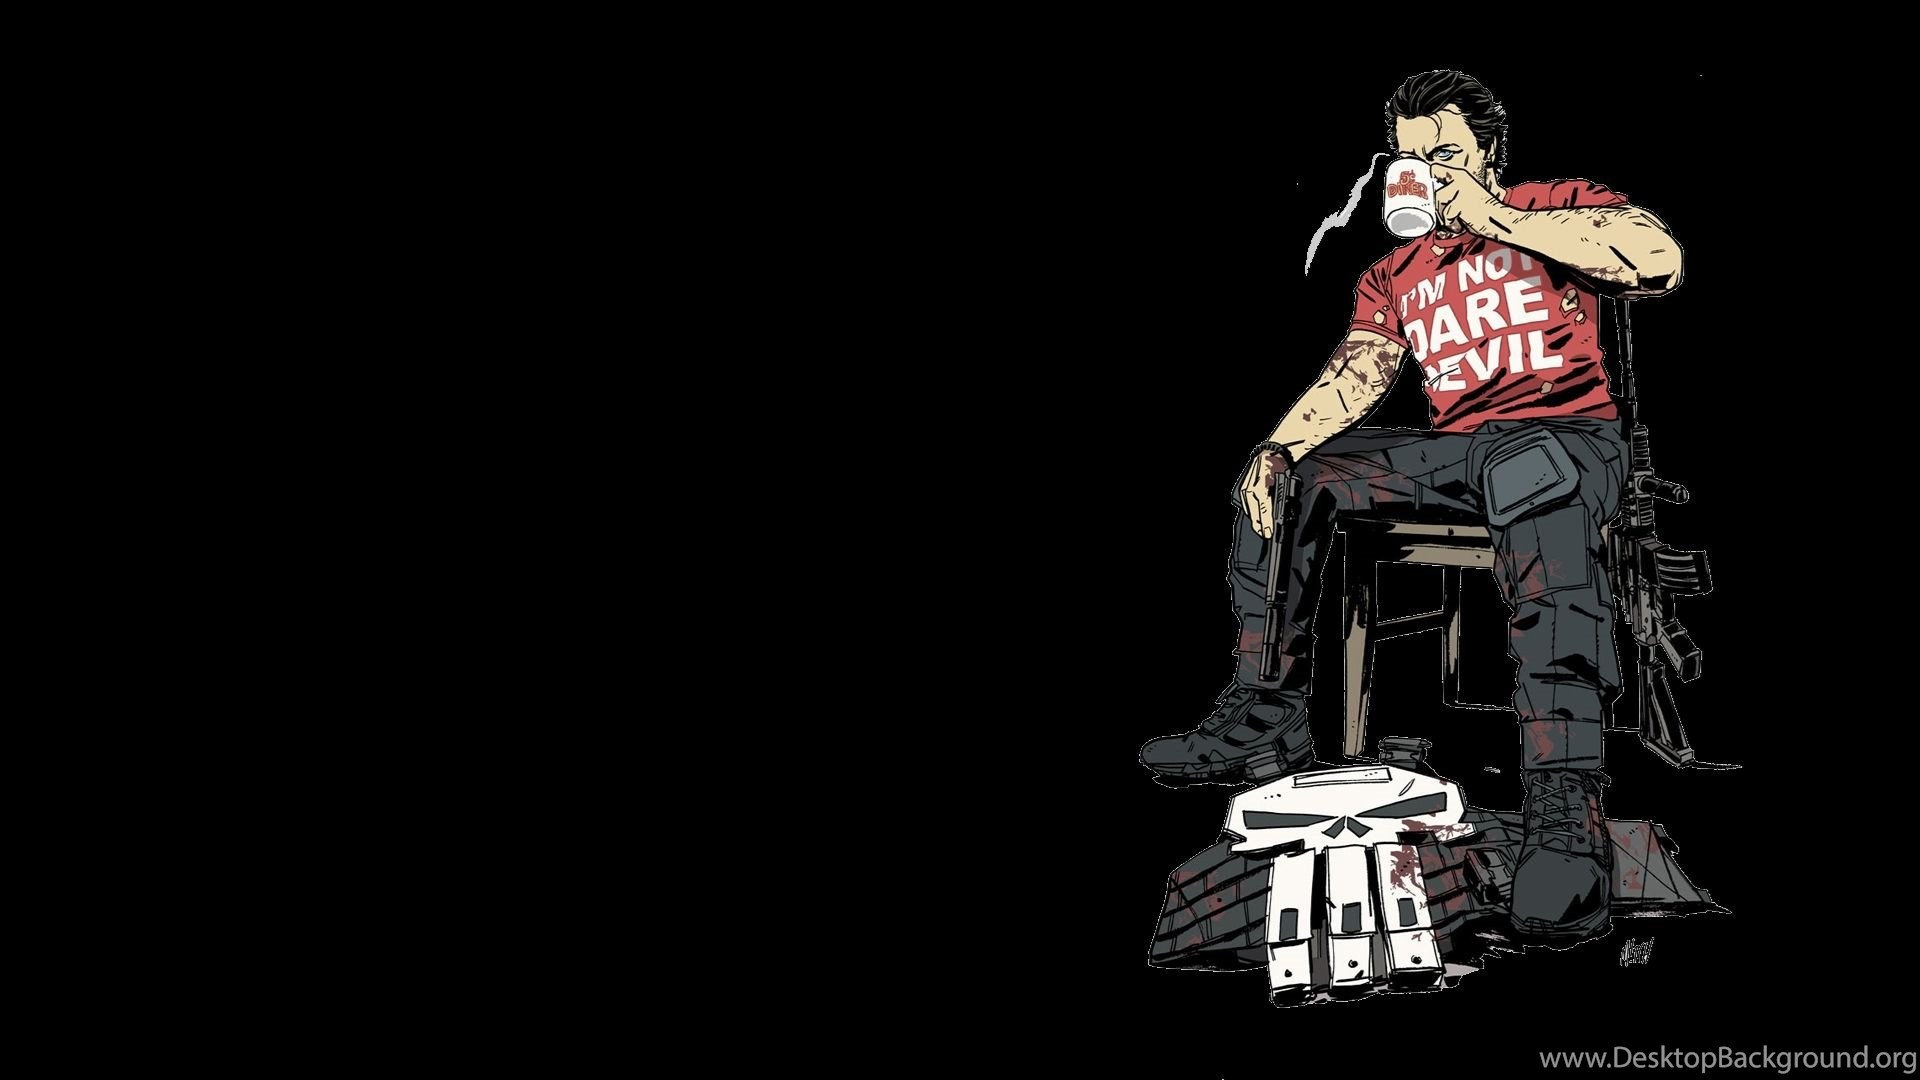 The Punisher Wallpapers Hd Awesome Desktop Background